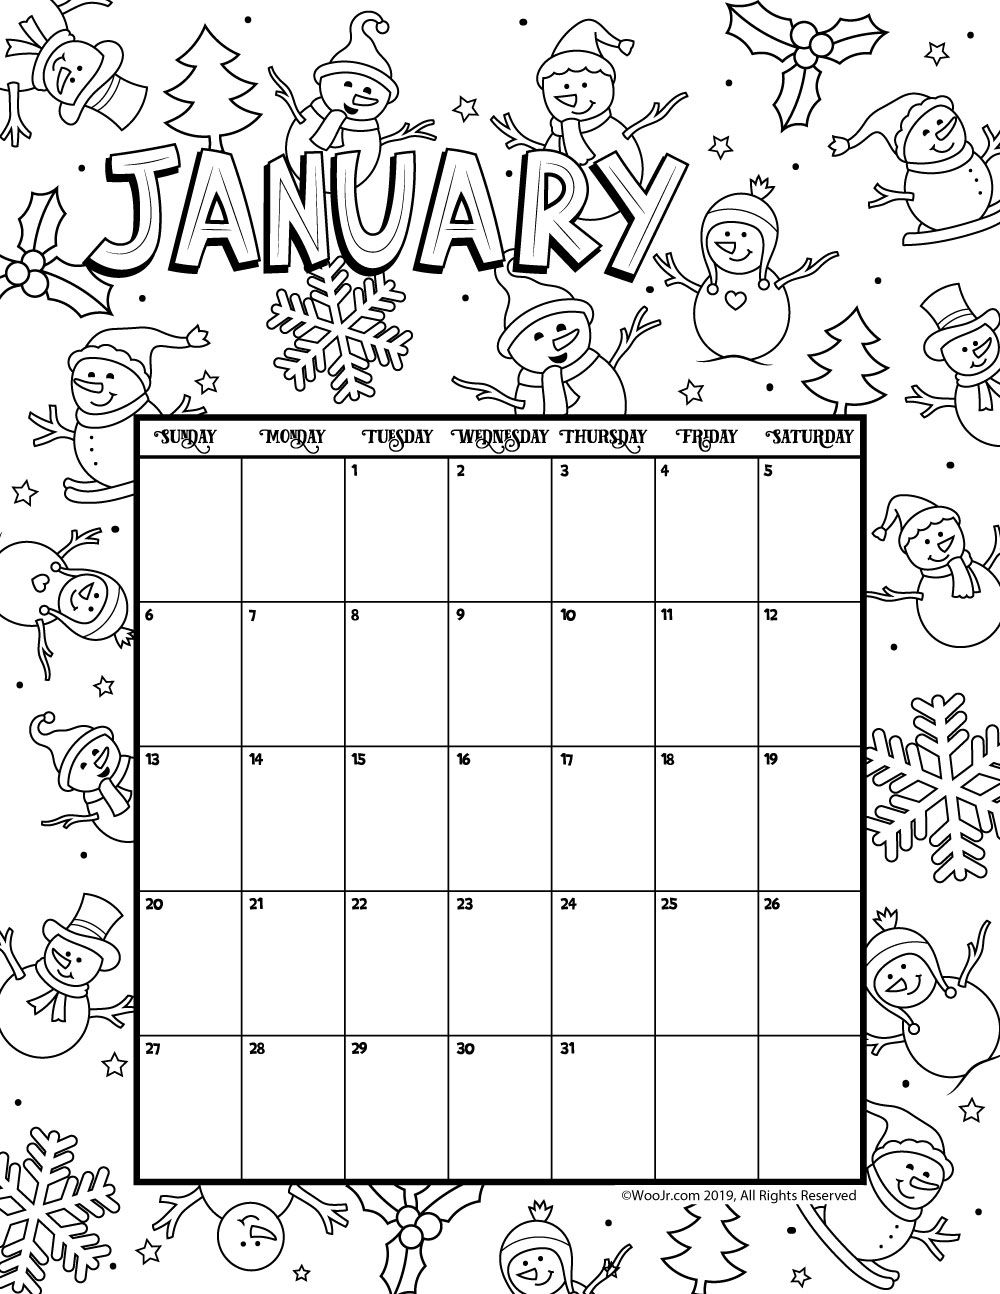 Printable Coloring Calendar January 2019 January 2019 Coloring Calendar | Young Women's | January calendar